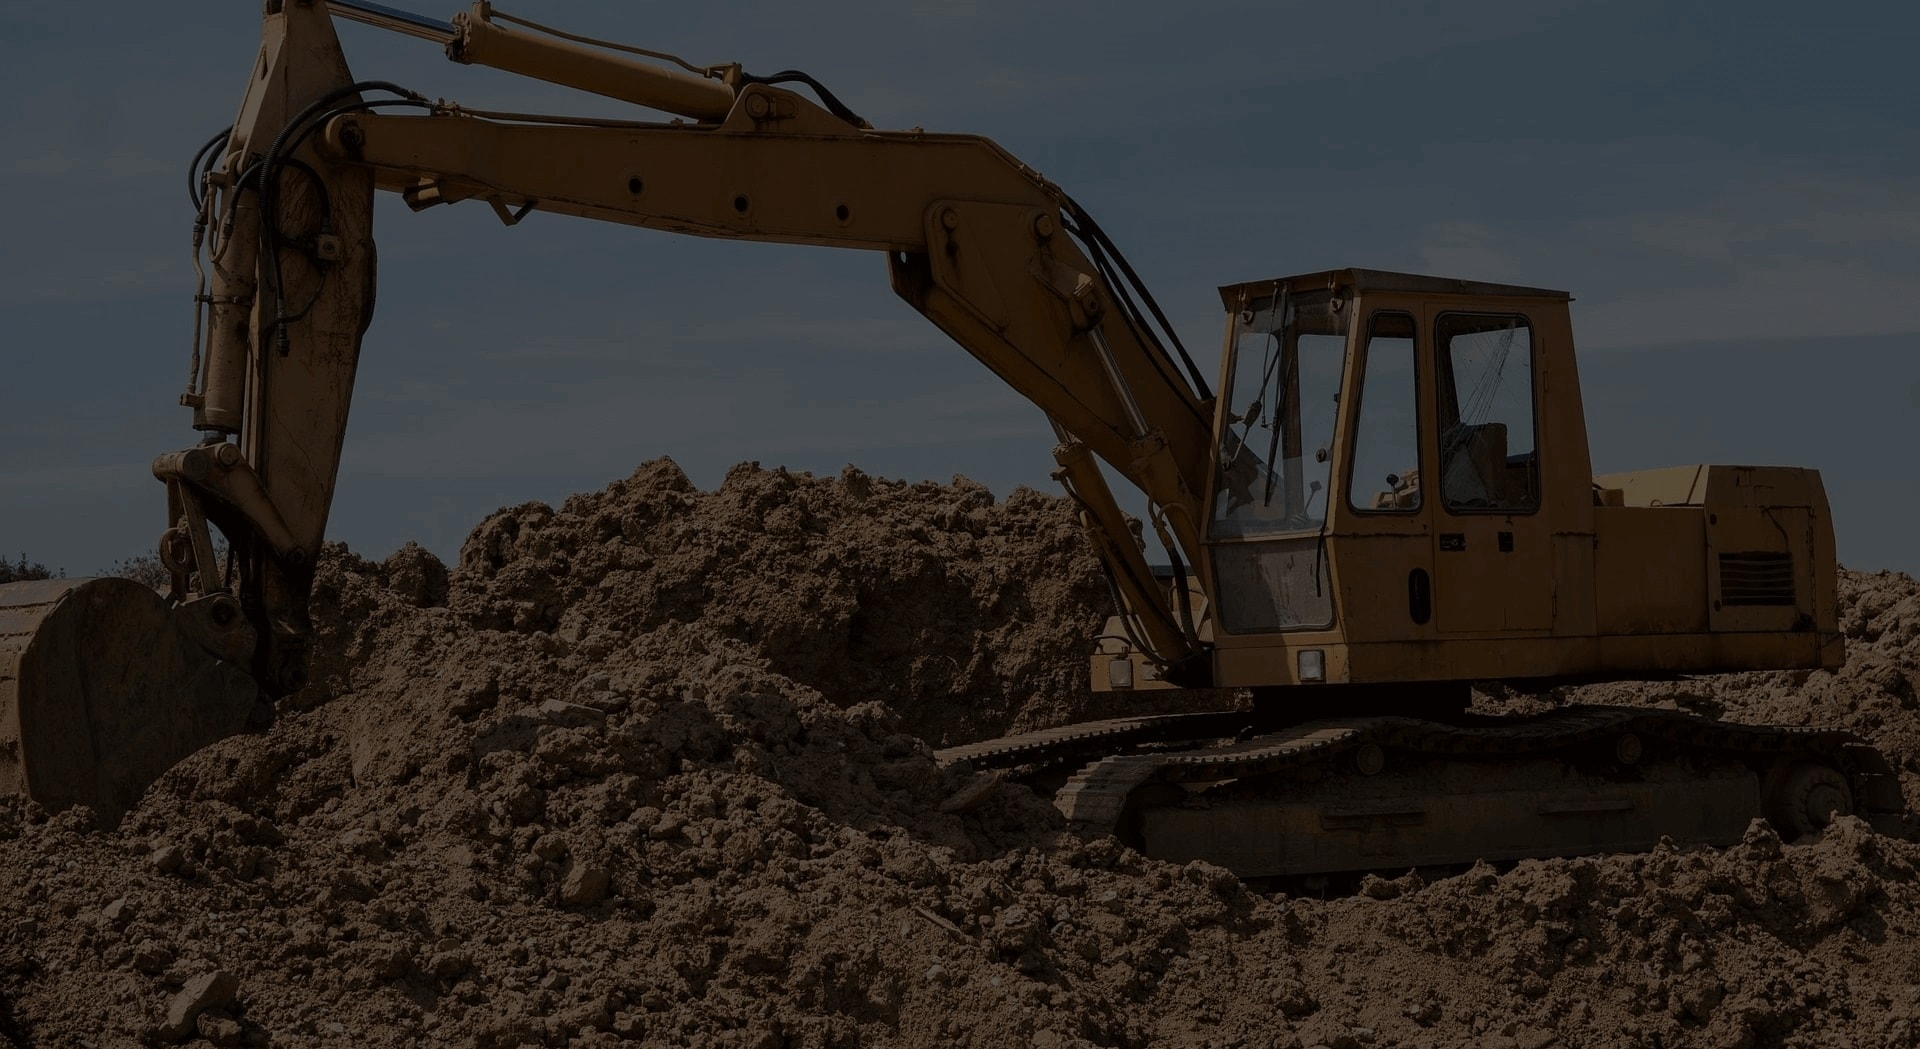 Image of a Construction Vehicle Moving Dirt